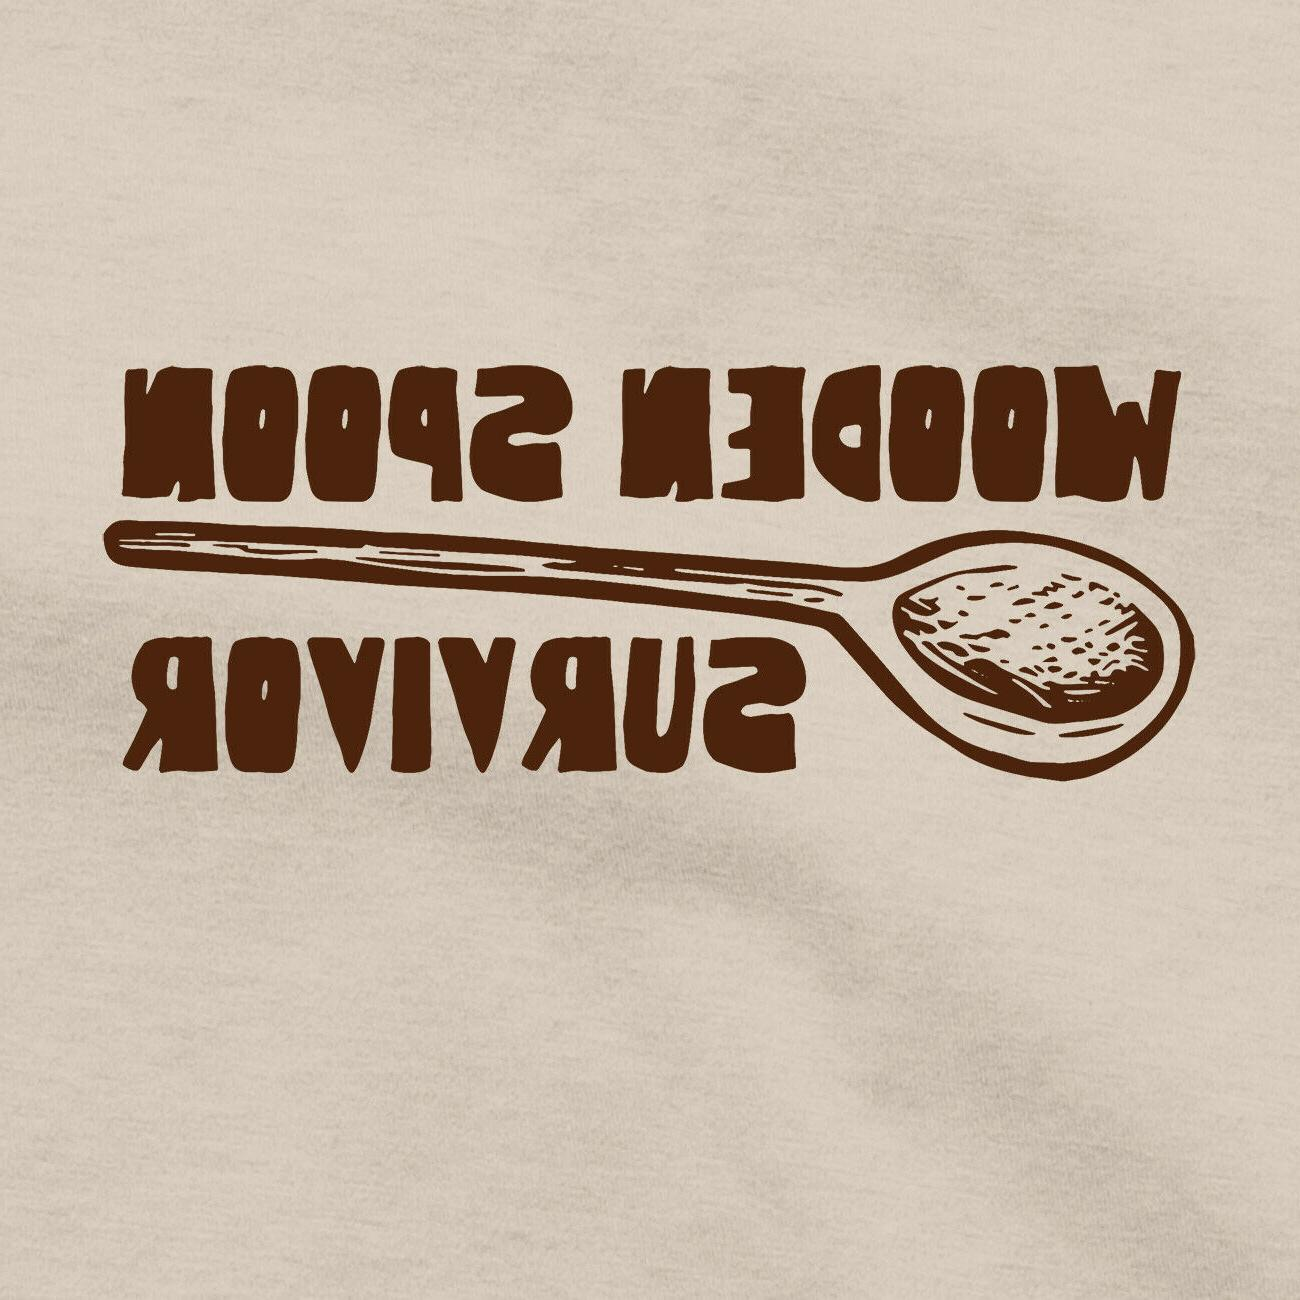 Wooden Spoon Paddle Switch Tee